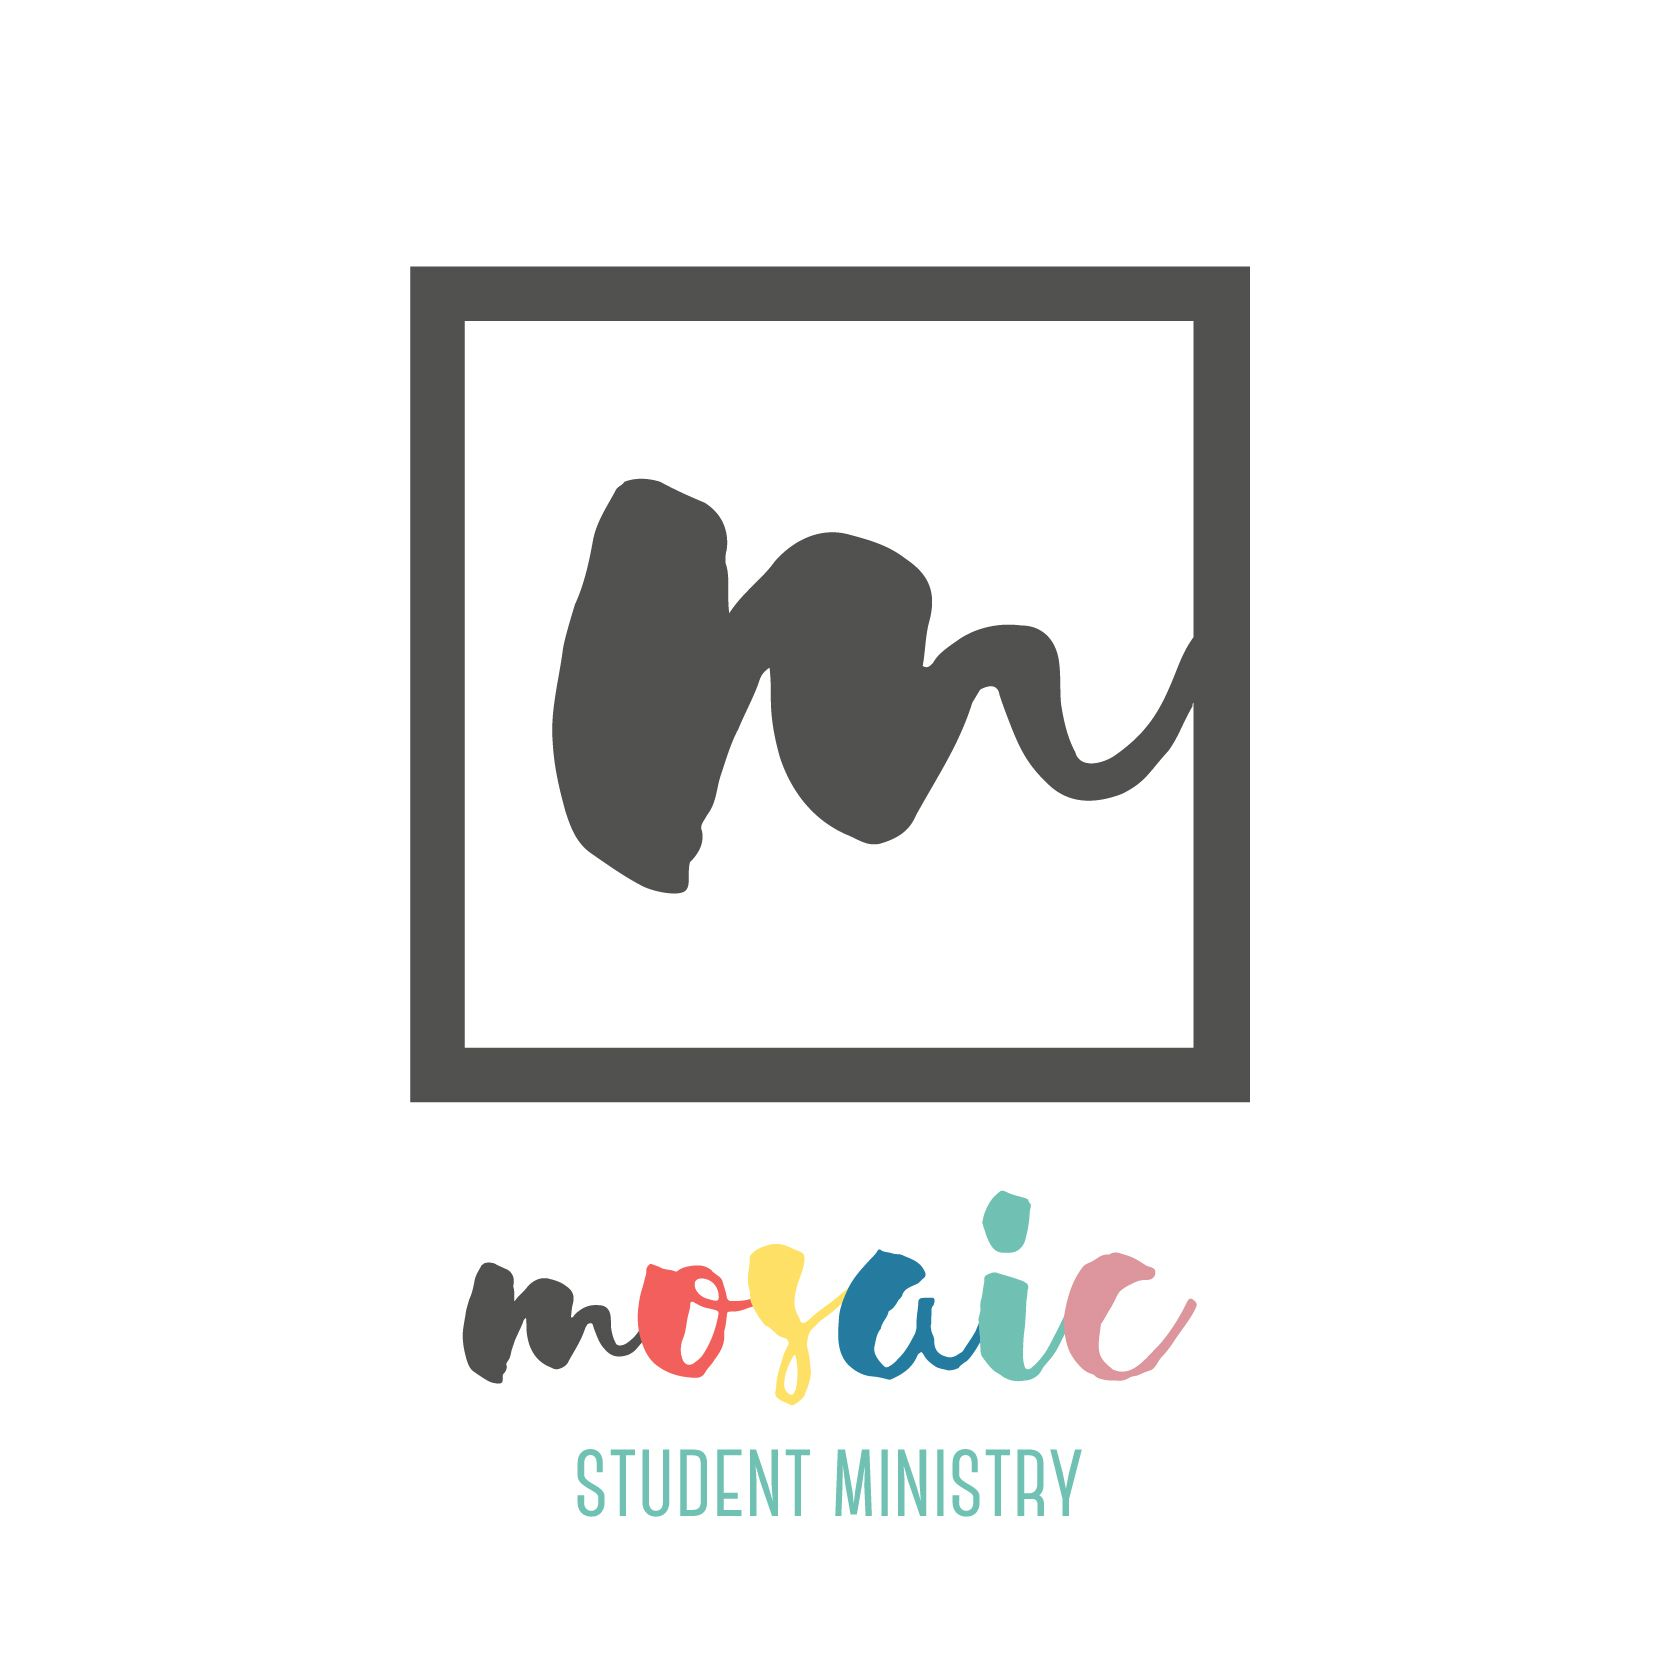 Mosaic Student Ministry - Youth Group Logos | Student ...